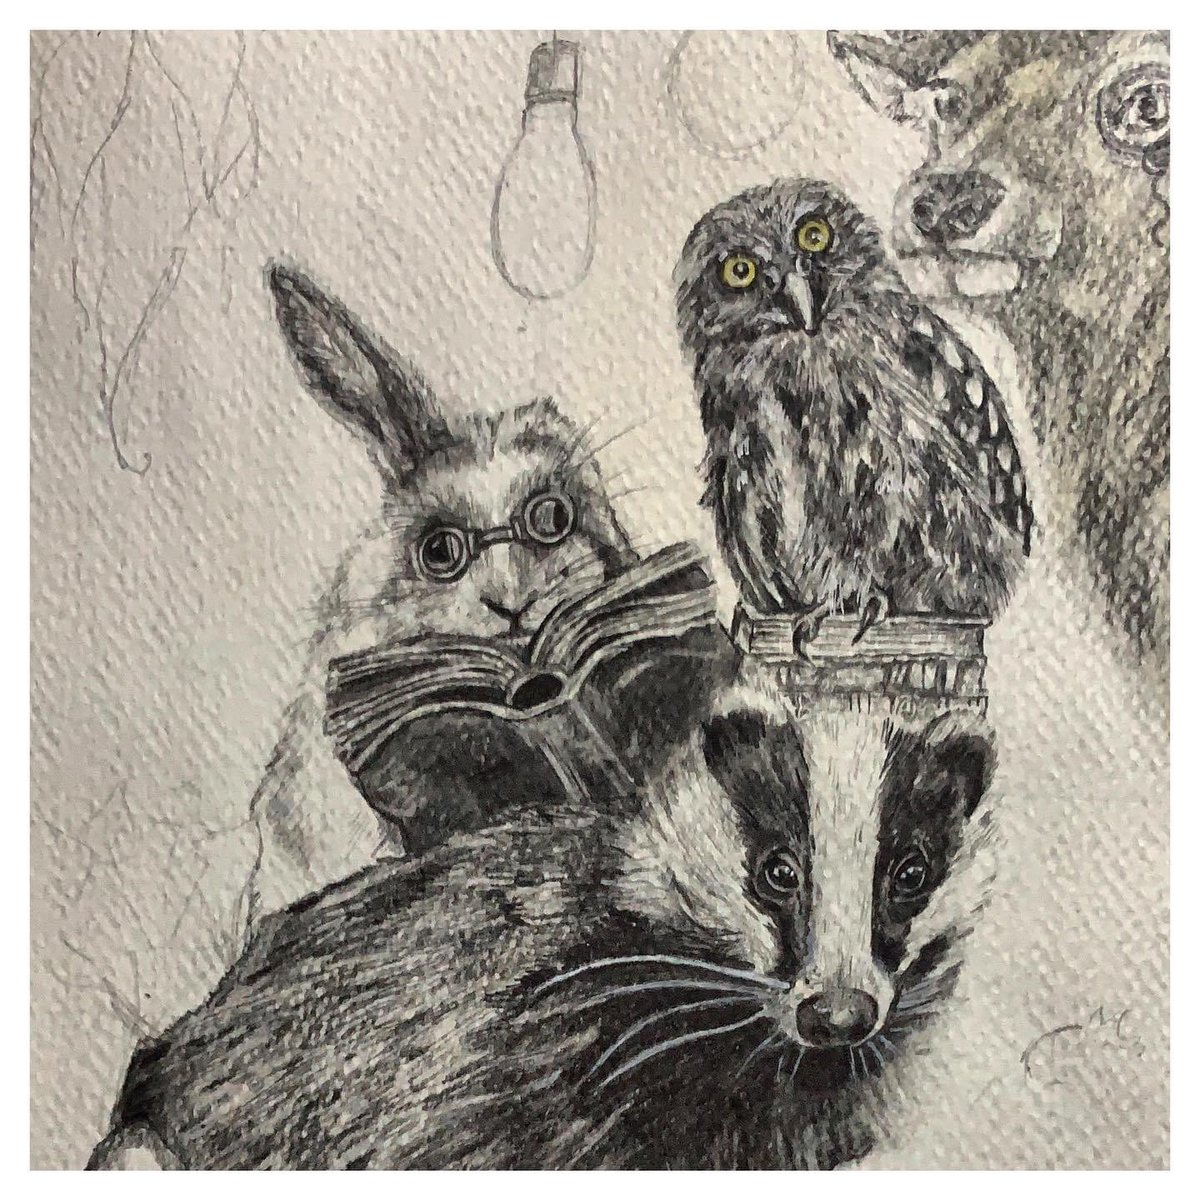 Proud to be a guest artist for Cushy Numbers who raise money for Freedom from Torture.  Work in progress. Close up. I wonder what those woodland friends are up to...   * * * #badger #owl #stag #owl #forestfriends #freedomfromtorture #onmyeasel  #pencilartist #commissionswelcome